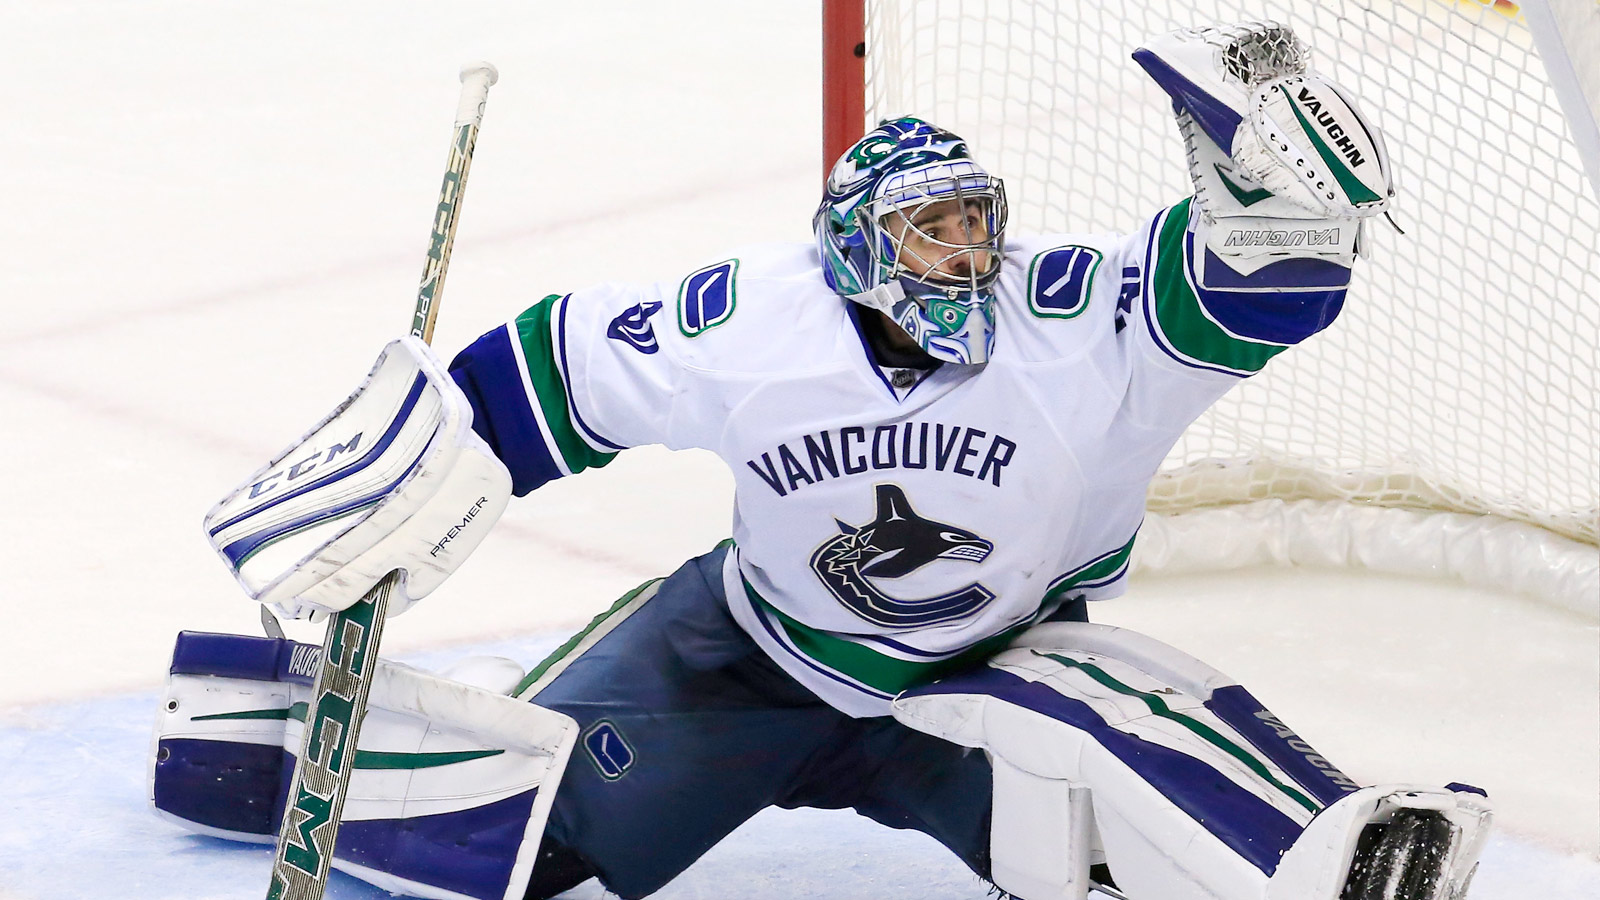 Ryan Miller's new vintage-style mask looks great